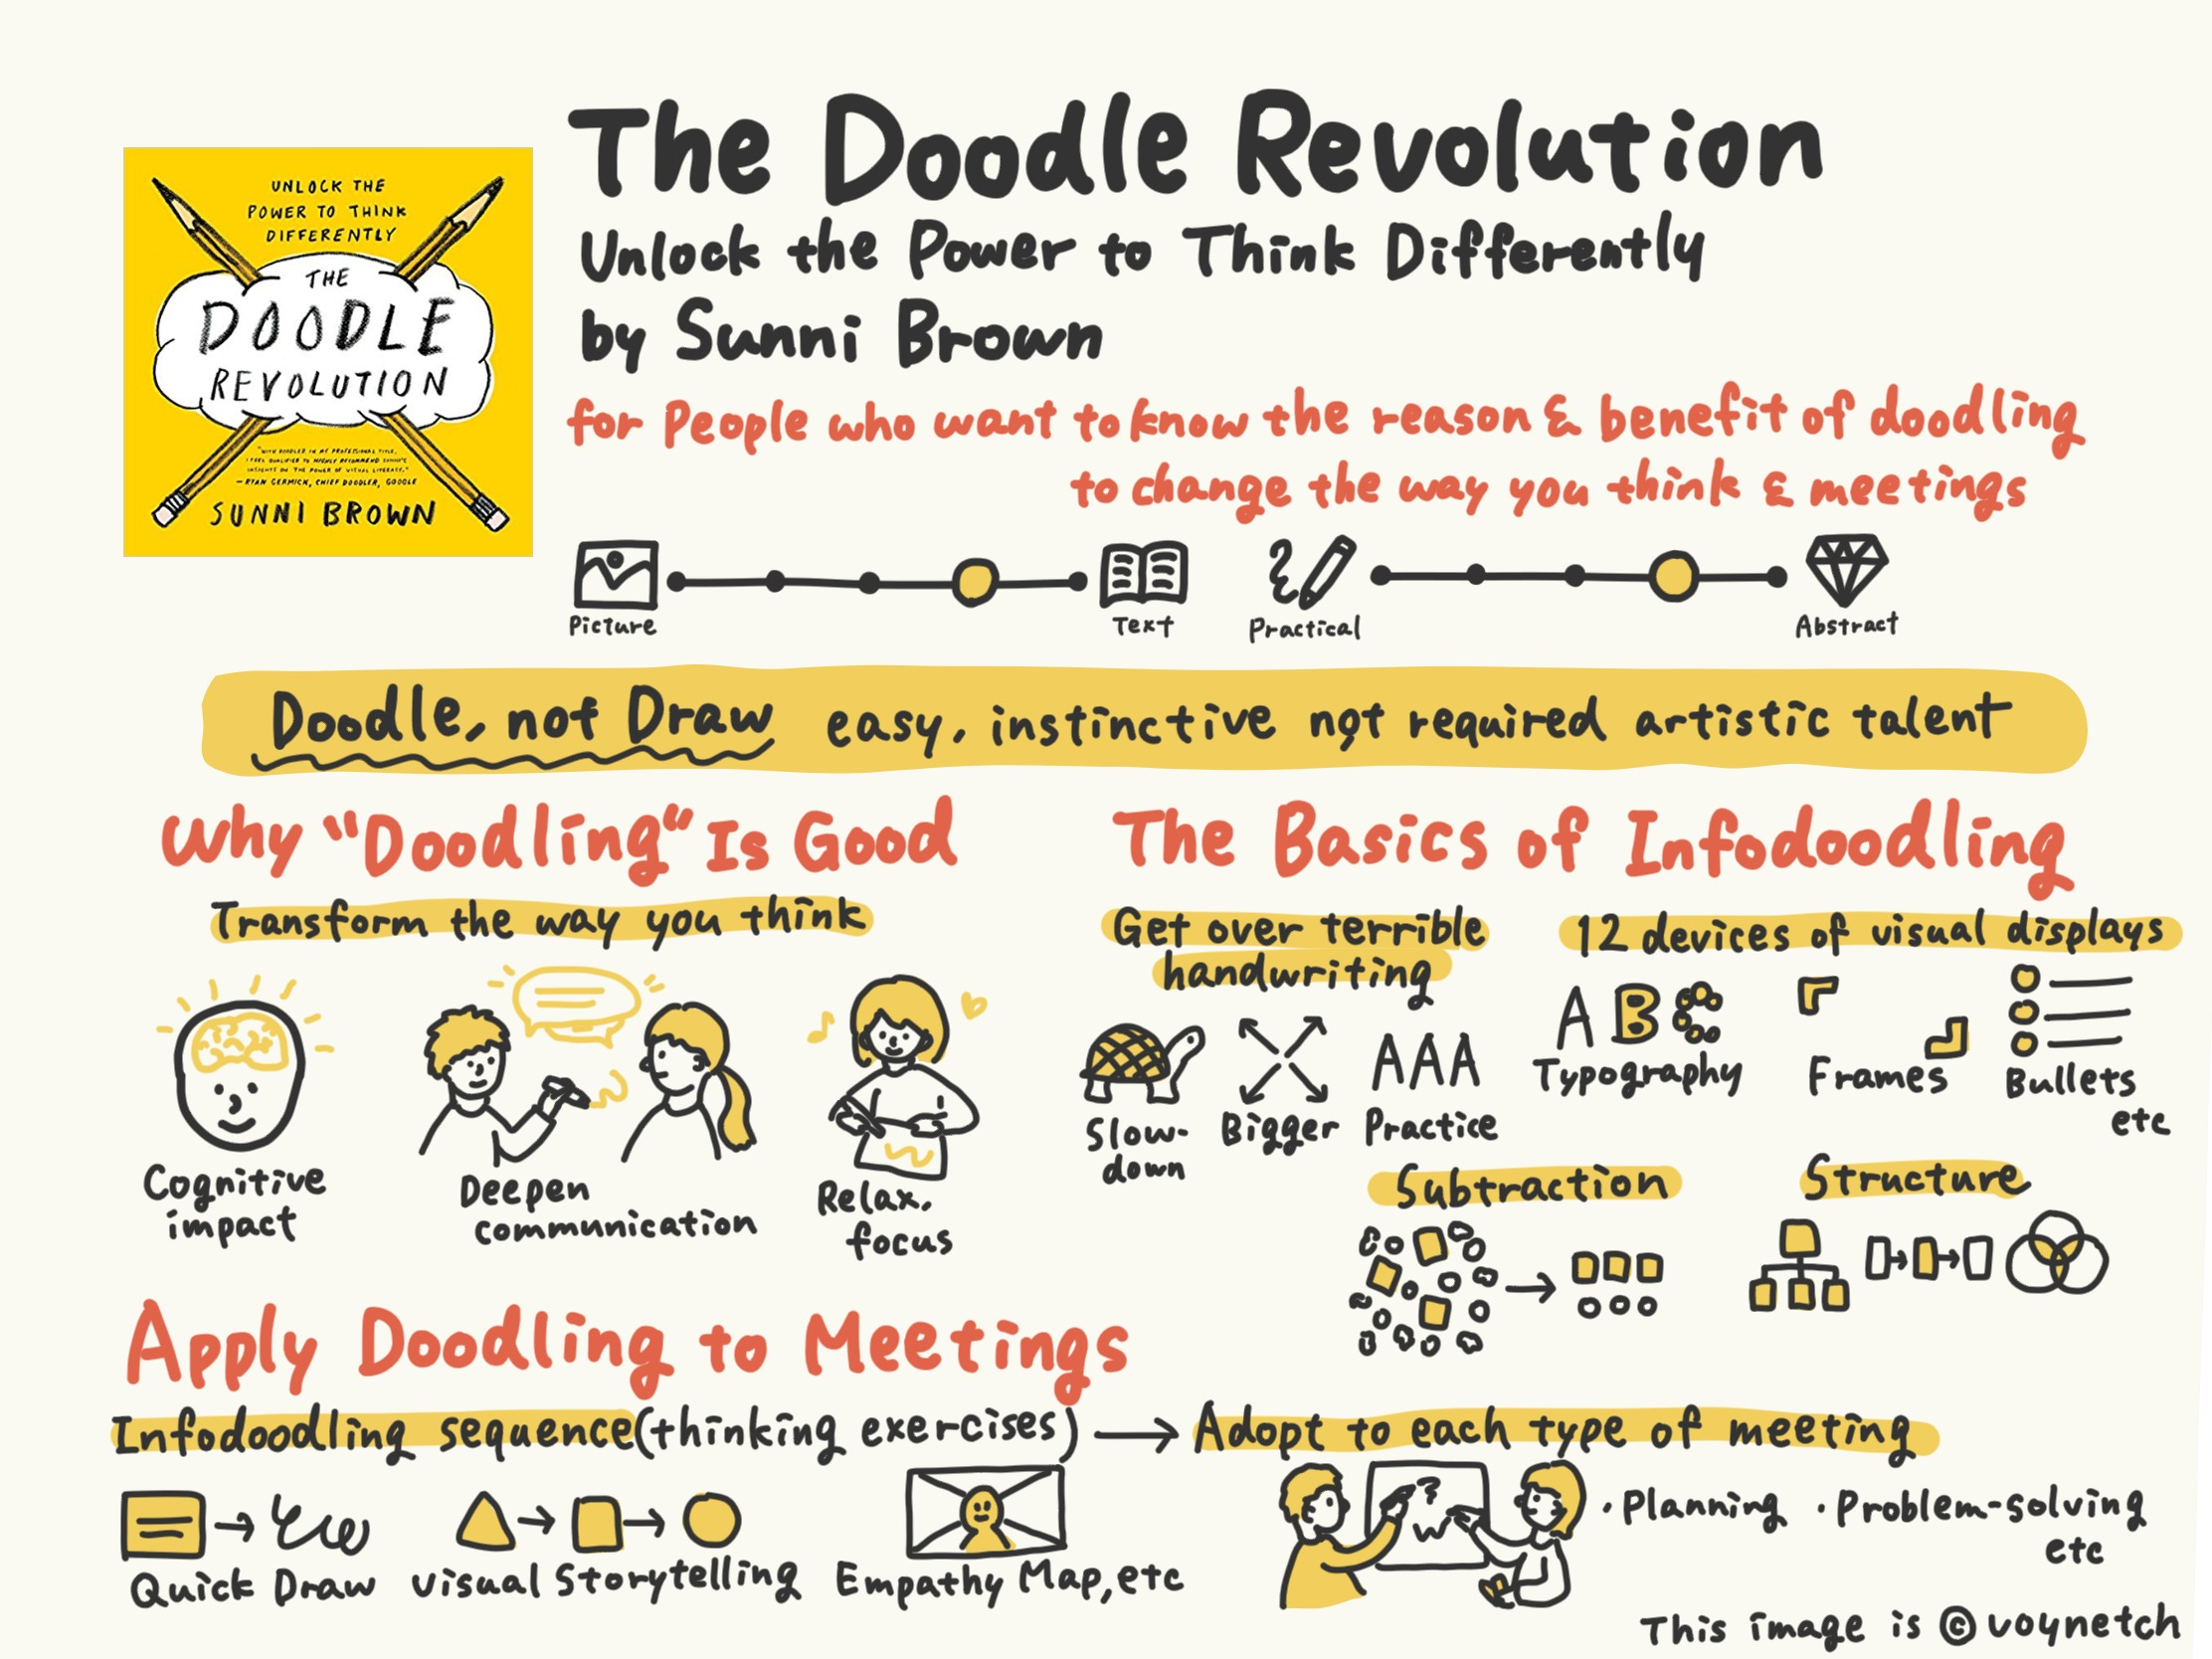 Visual Book Summary- The Doodle Revolution: Unlock the Power to Think Differently Image